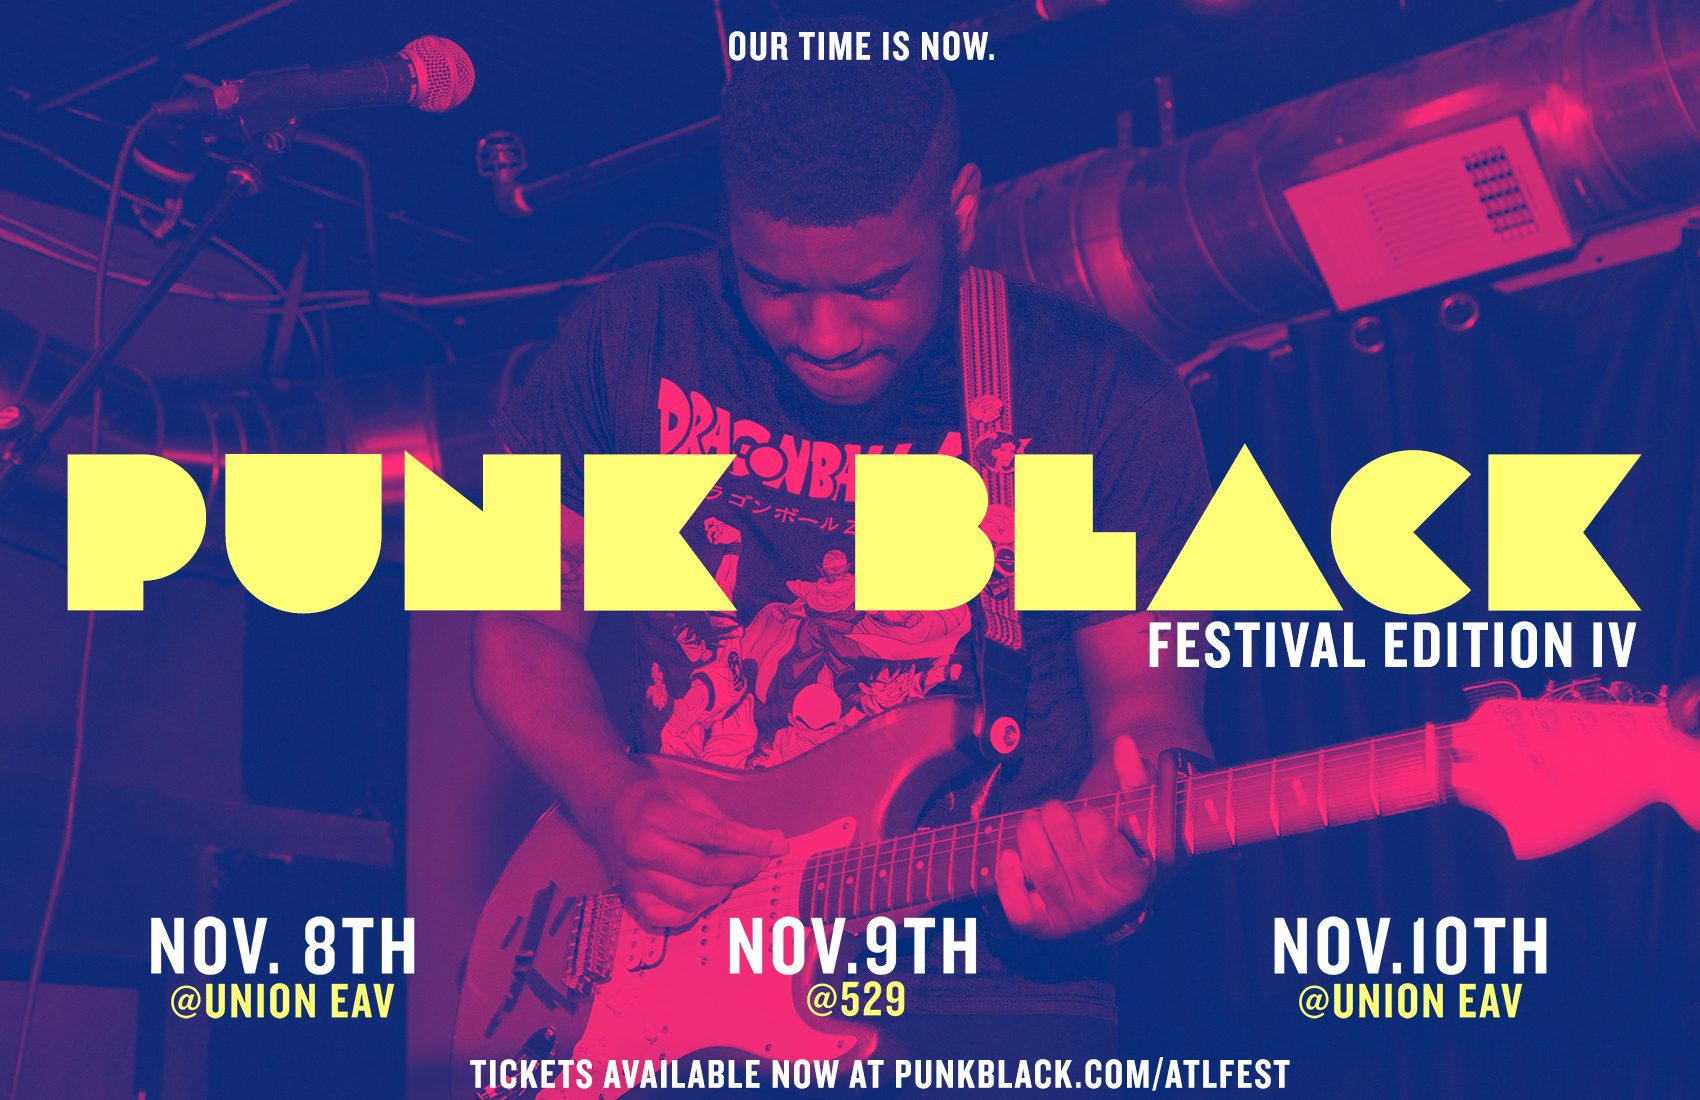 PUNK BLACK Festival Edition IV